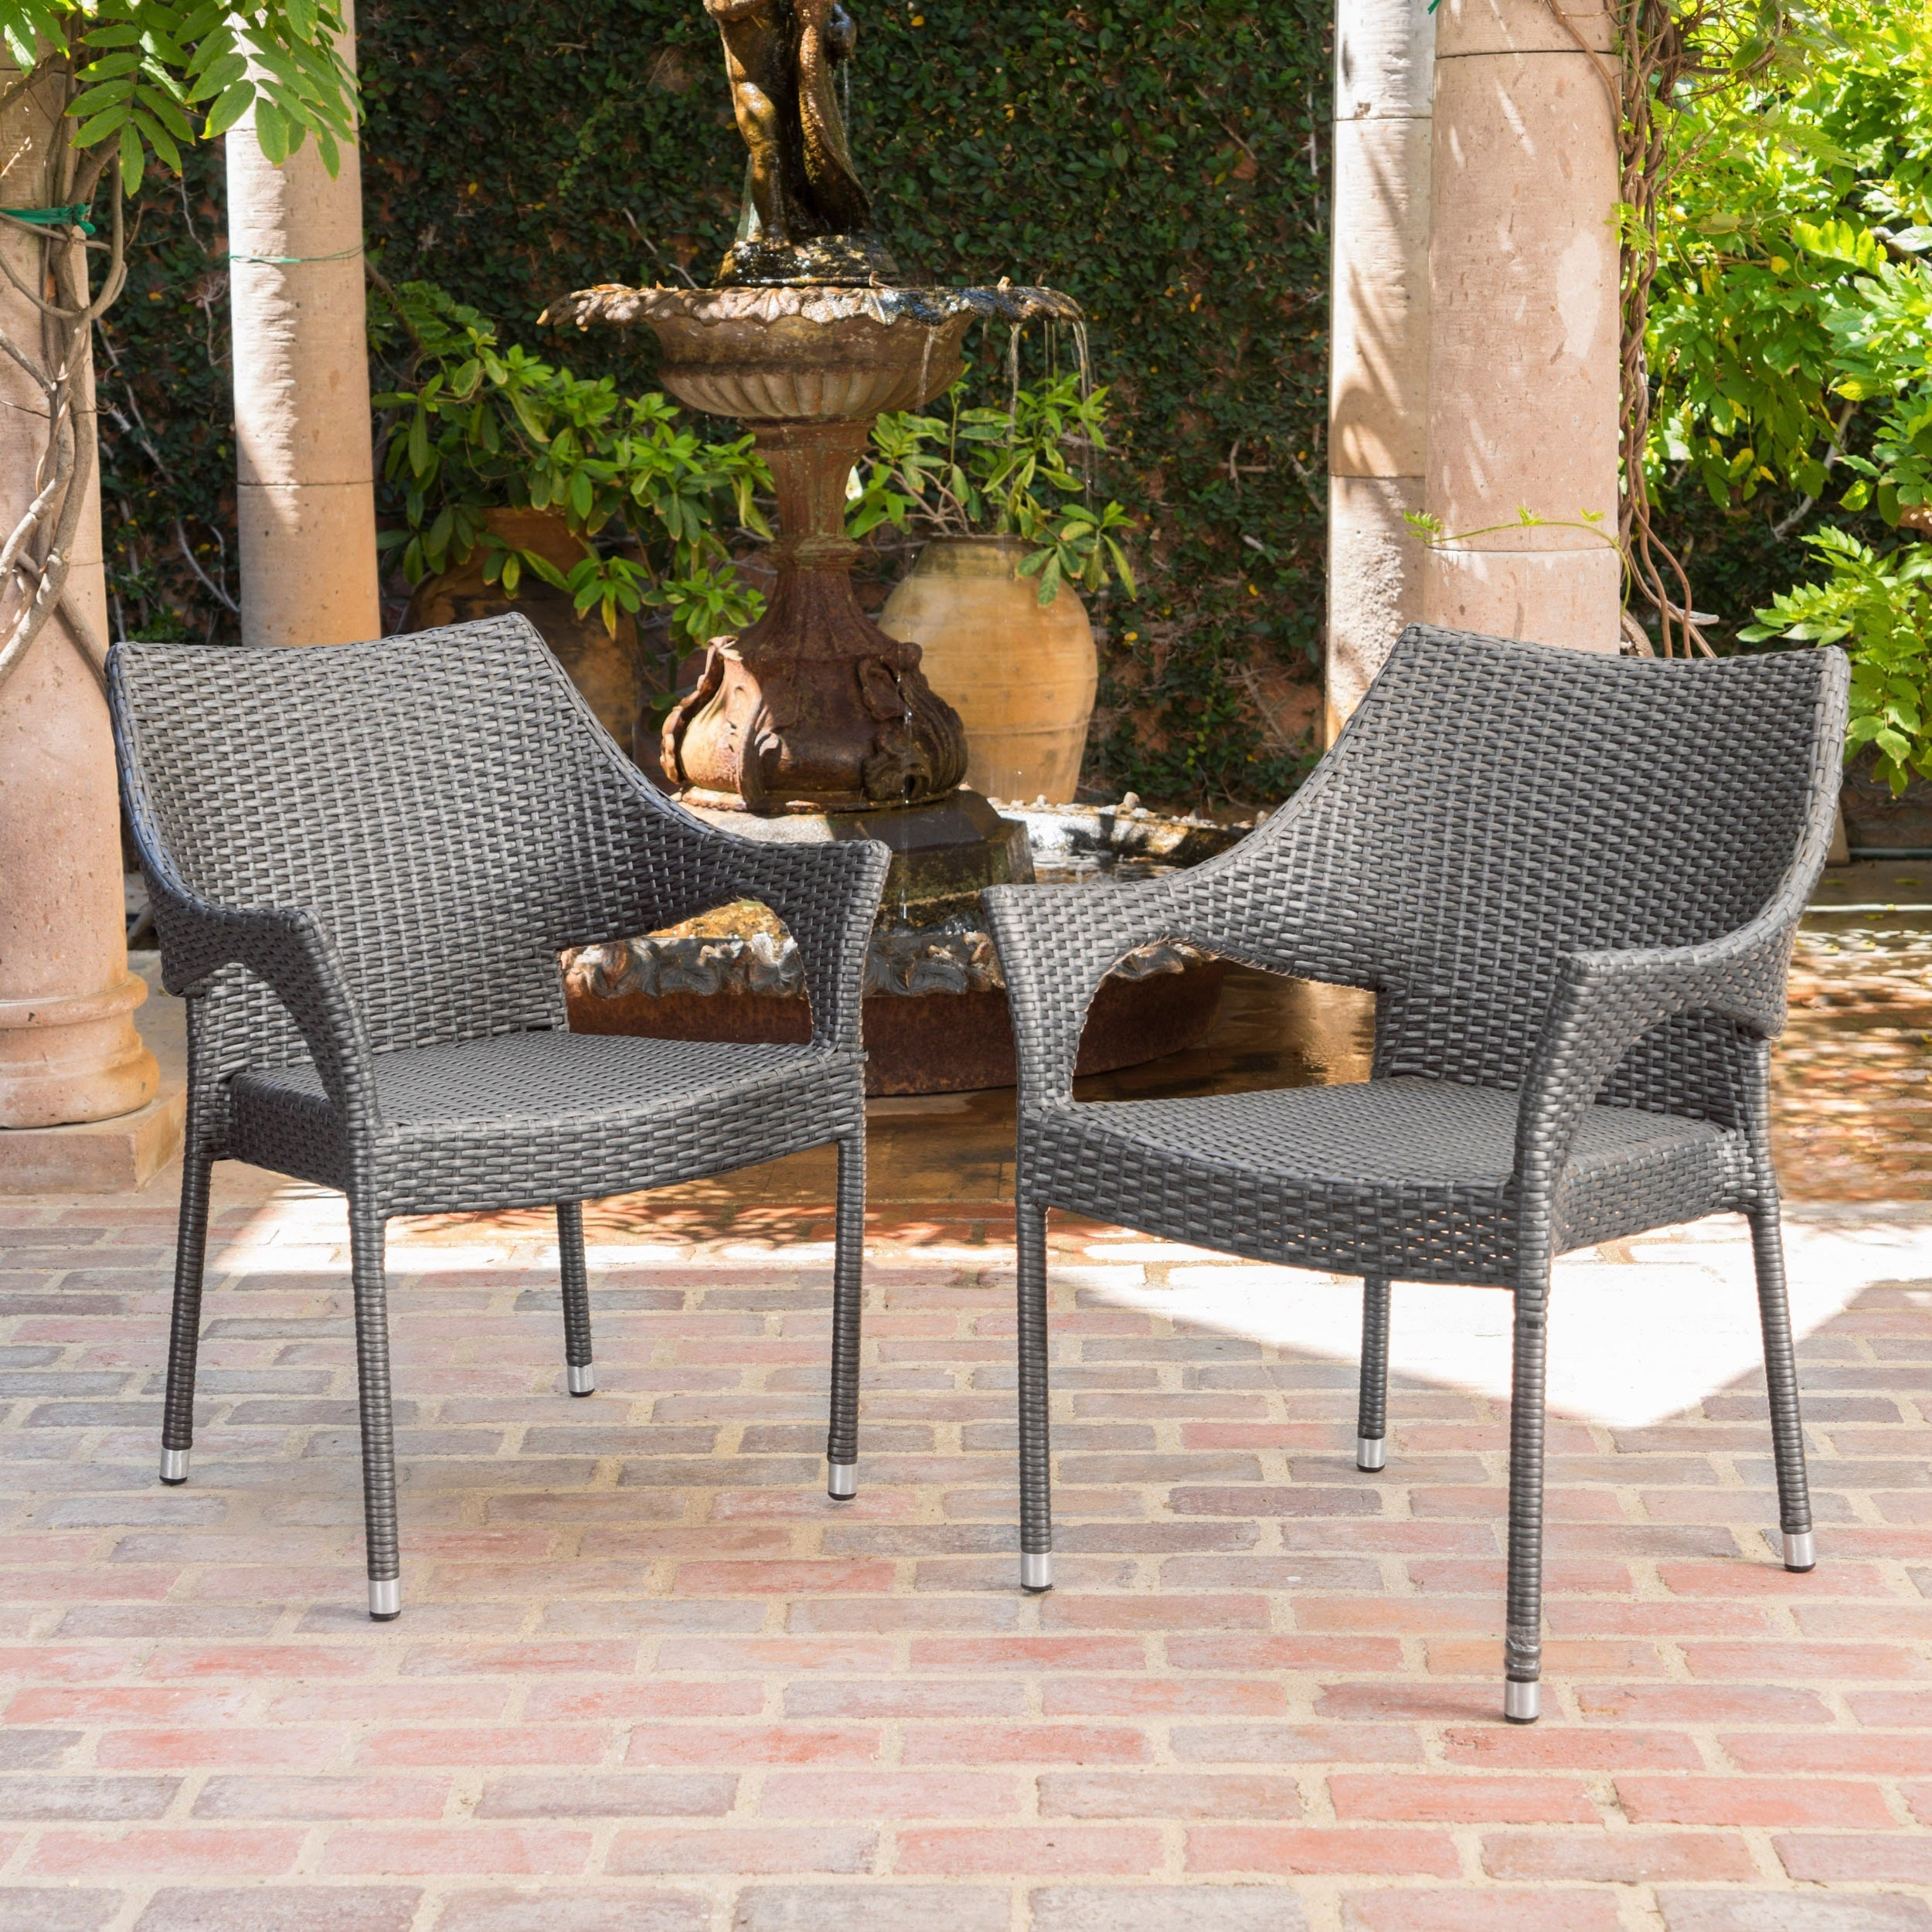 chairs patio in gallery fantastic furniture chair modern outdoor wicker ideas design view